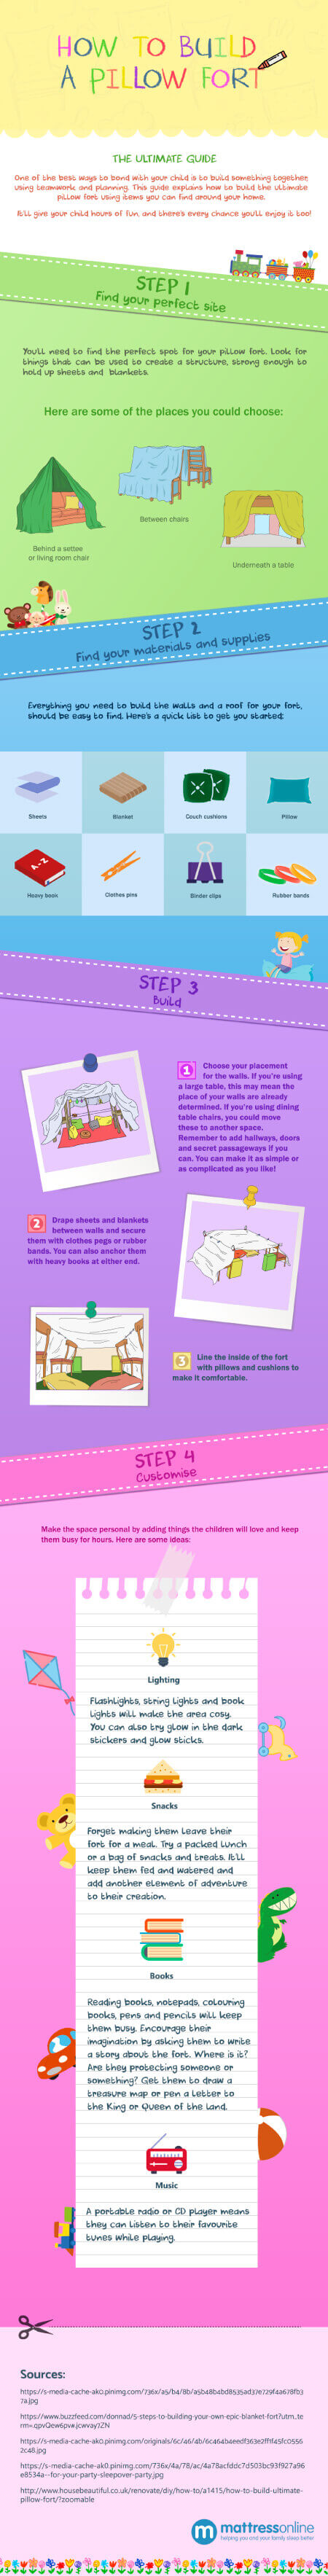 Pillowfort Infographic